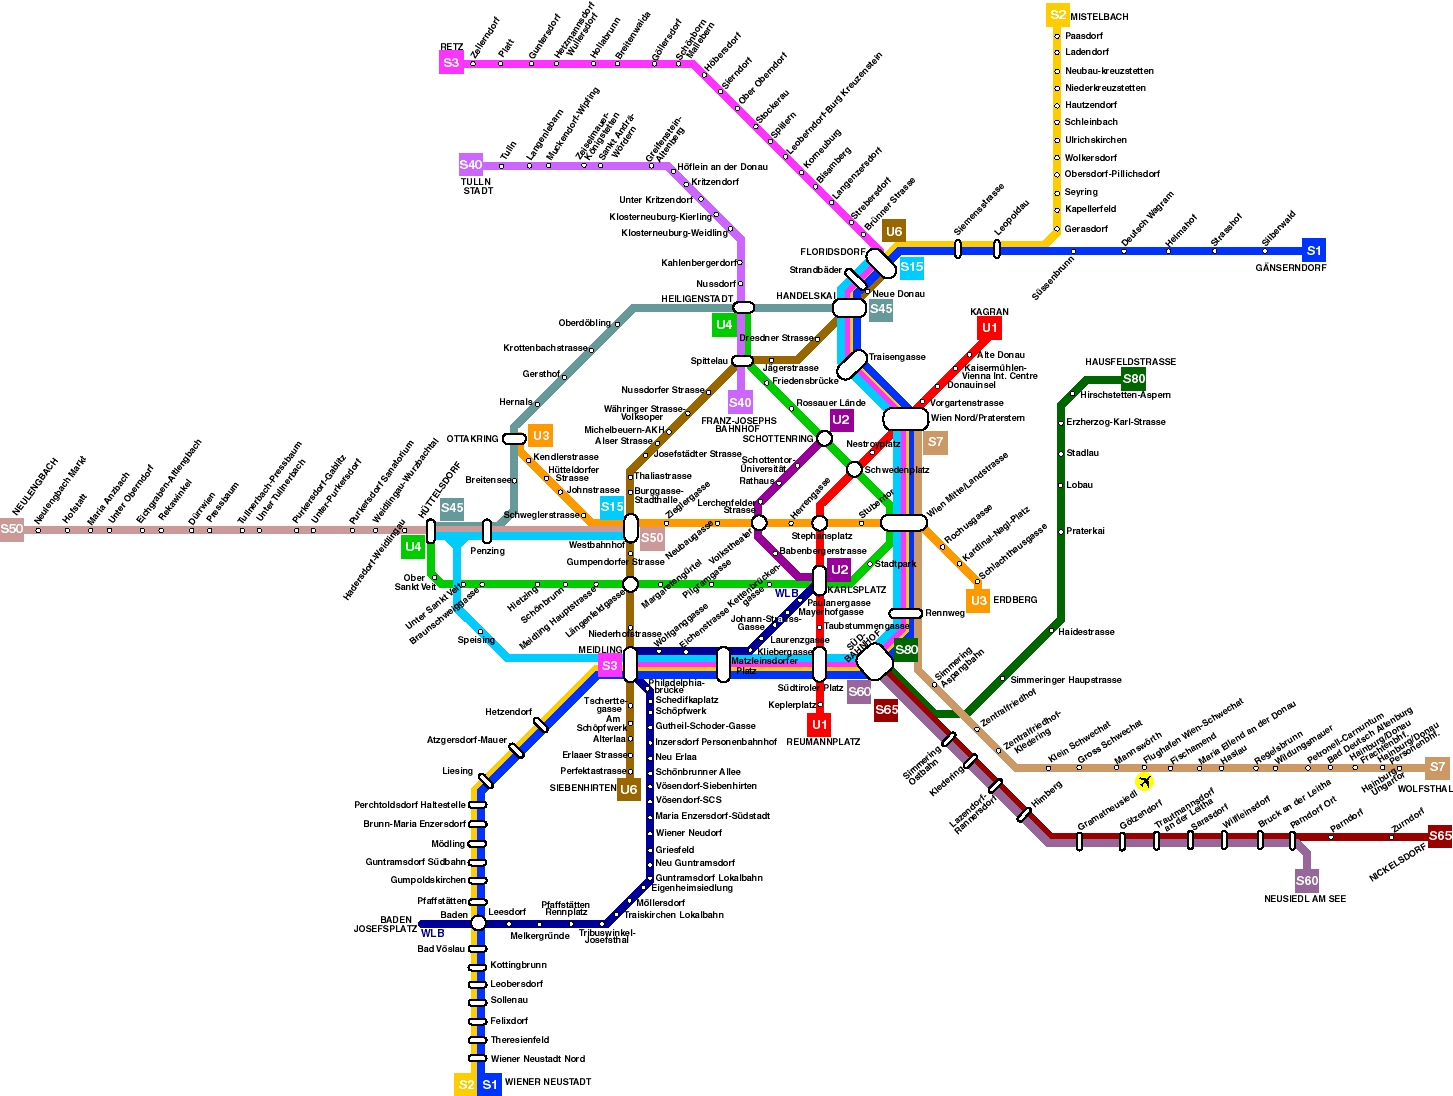 Public transportation map of vienna city vienna austria europe public transportation map of vienna city gumiabroncs Choice Image